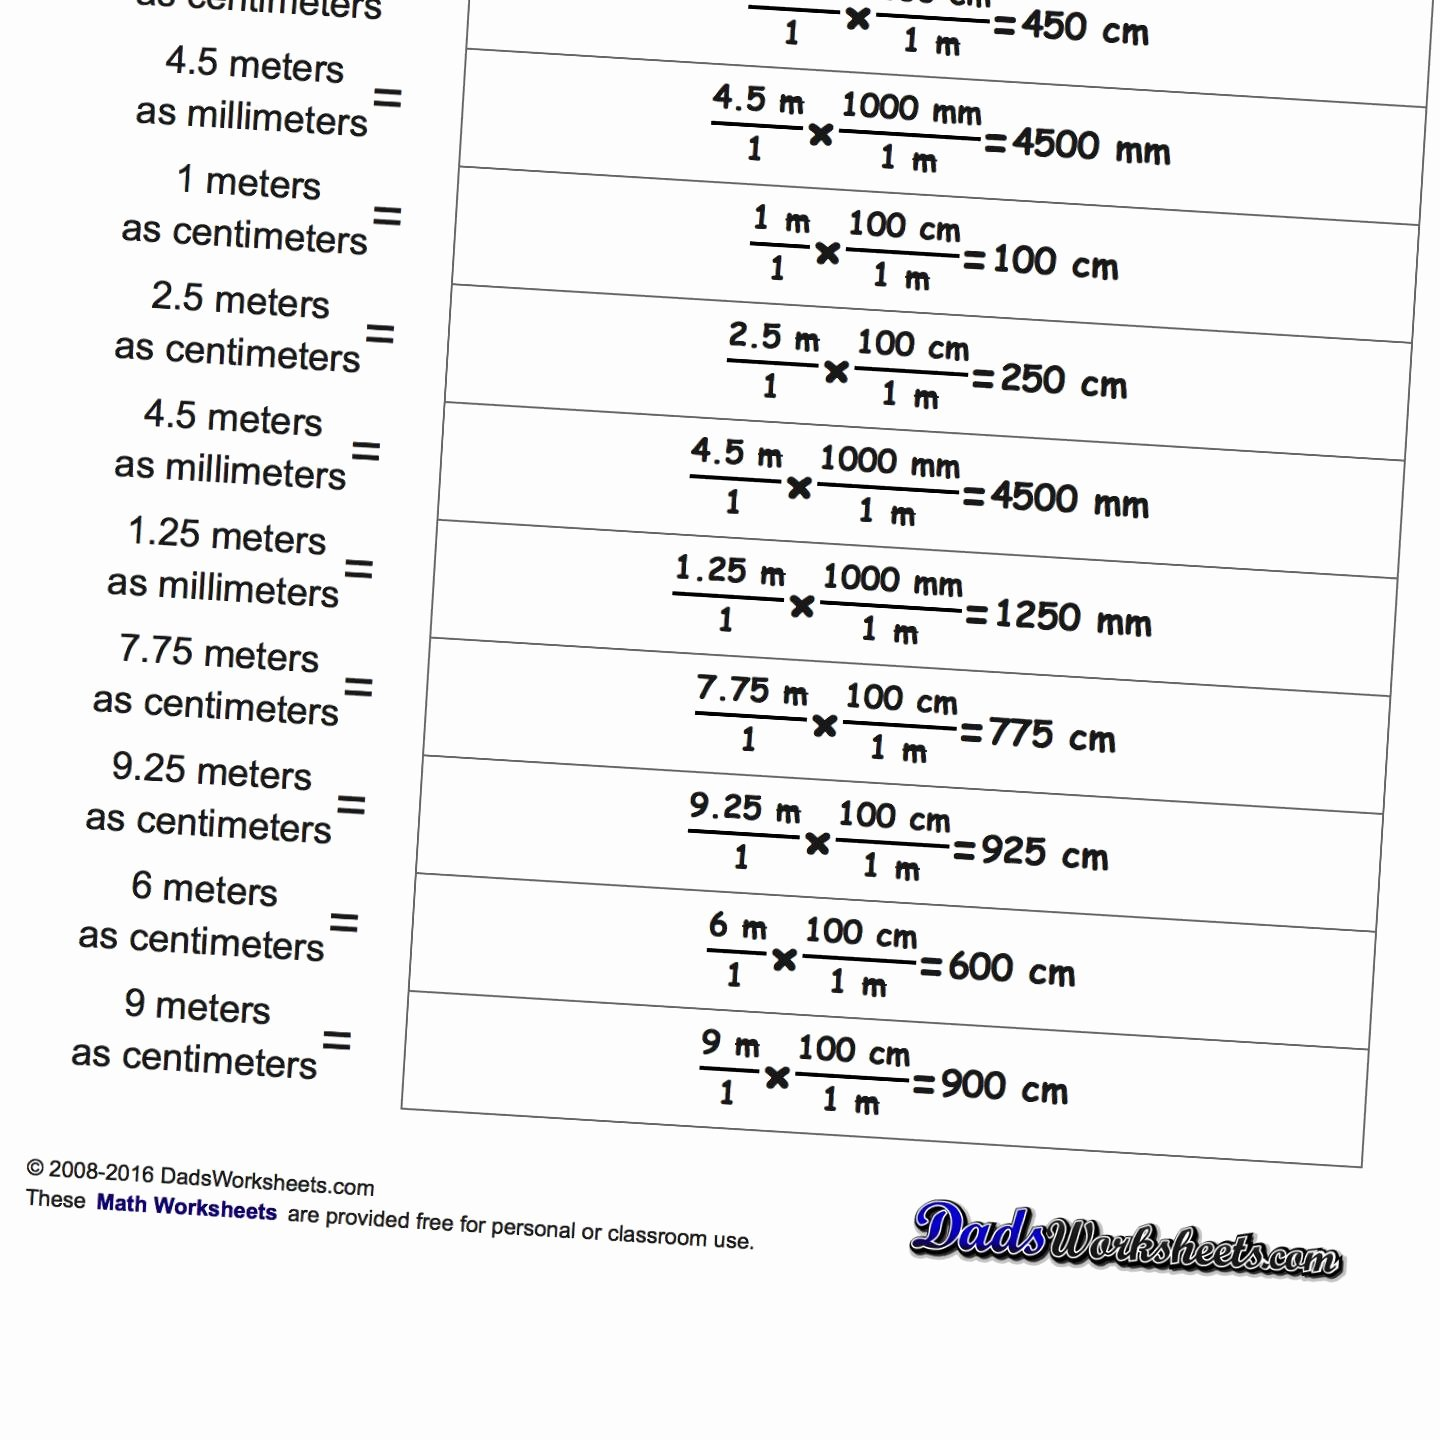 Metric Conversion Worksheet Chemistry Awesome Chemistry Metric Conversion Worksheet with Answers the